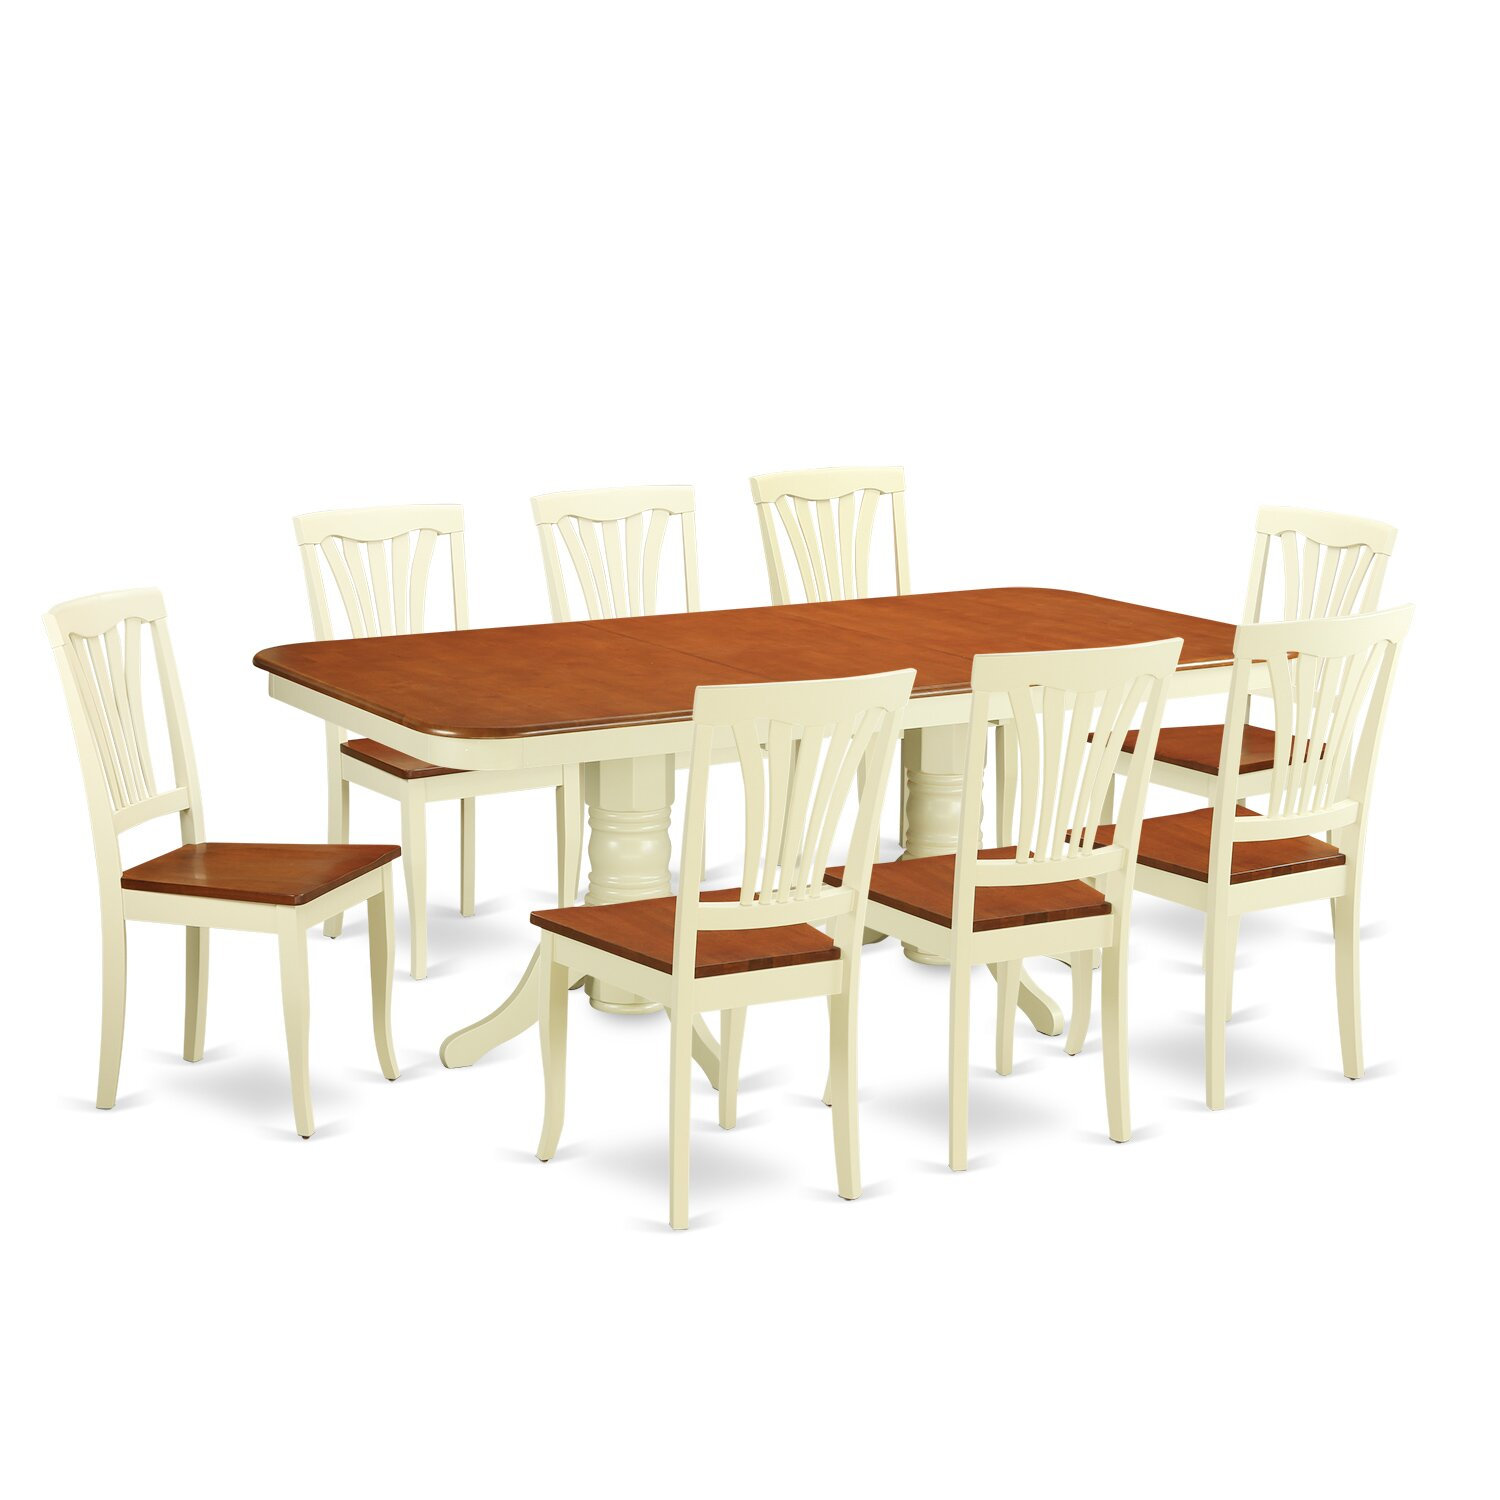 Wooden importers napoleon 9 piece dining set for Dining room tables 9 piece